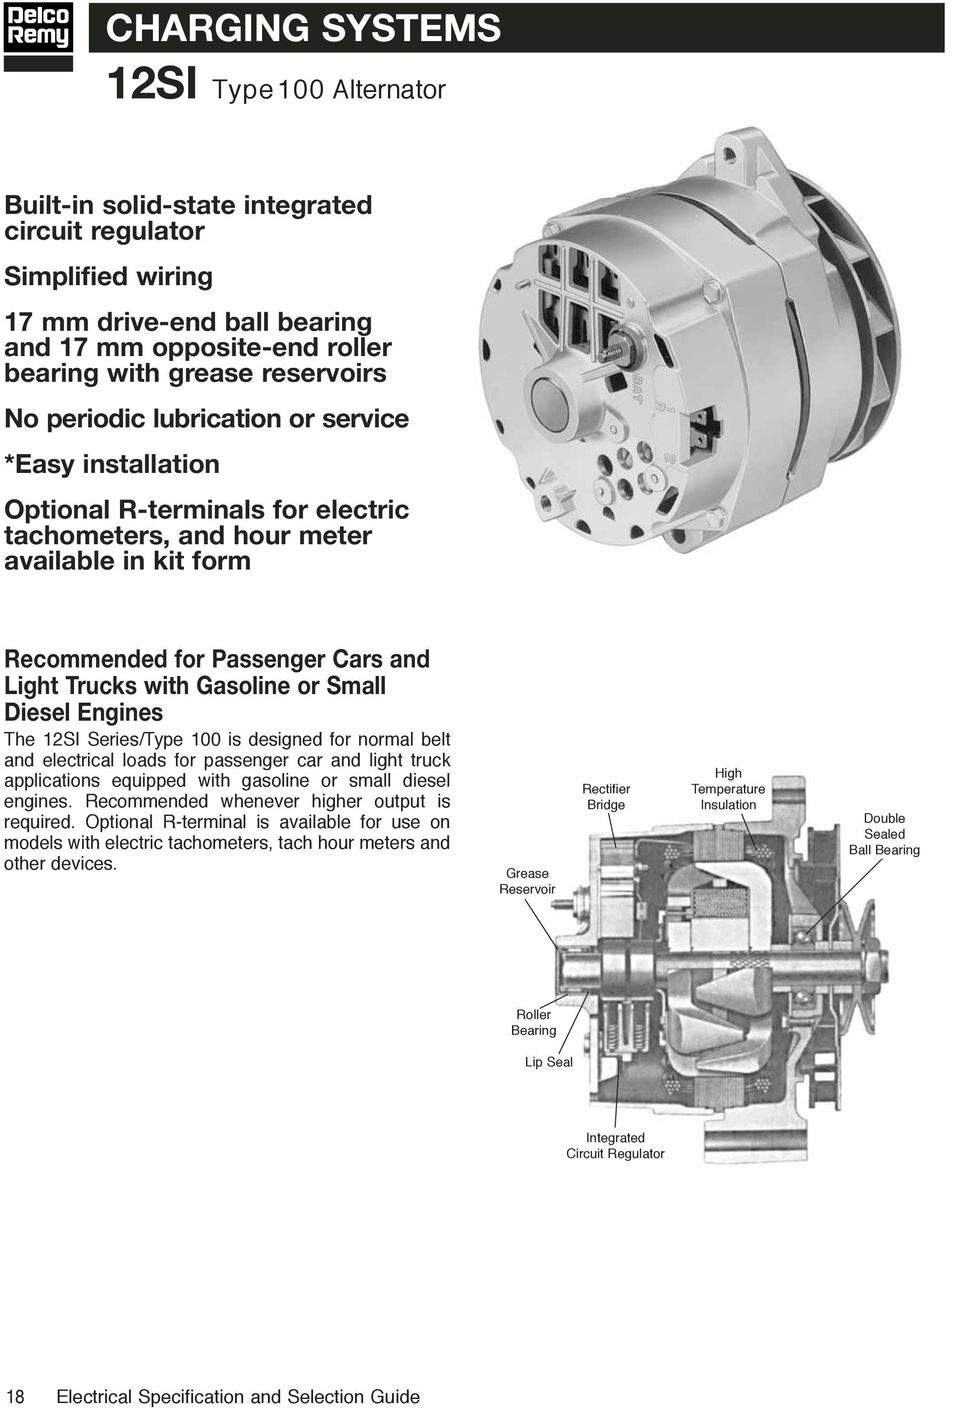 Electrical Specifications Selection Guide Pdf Delco 21si Wiring Diagram Get Free Image About Or Small Diesel Engines The 12si Series Type 100 Is Designed For Normal Belt And